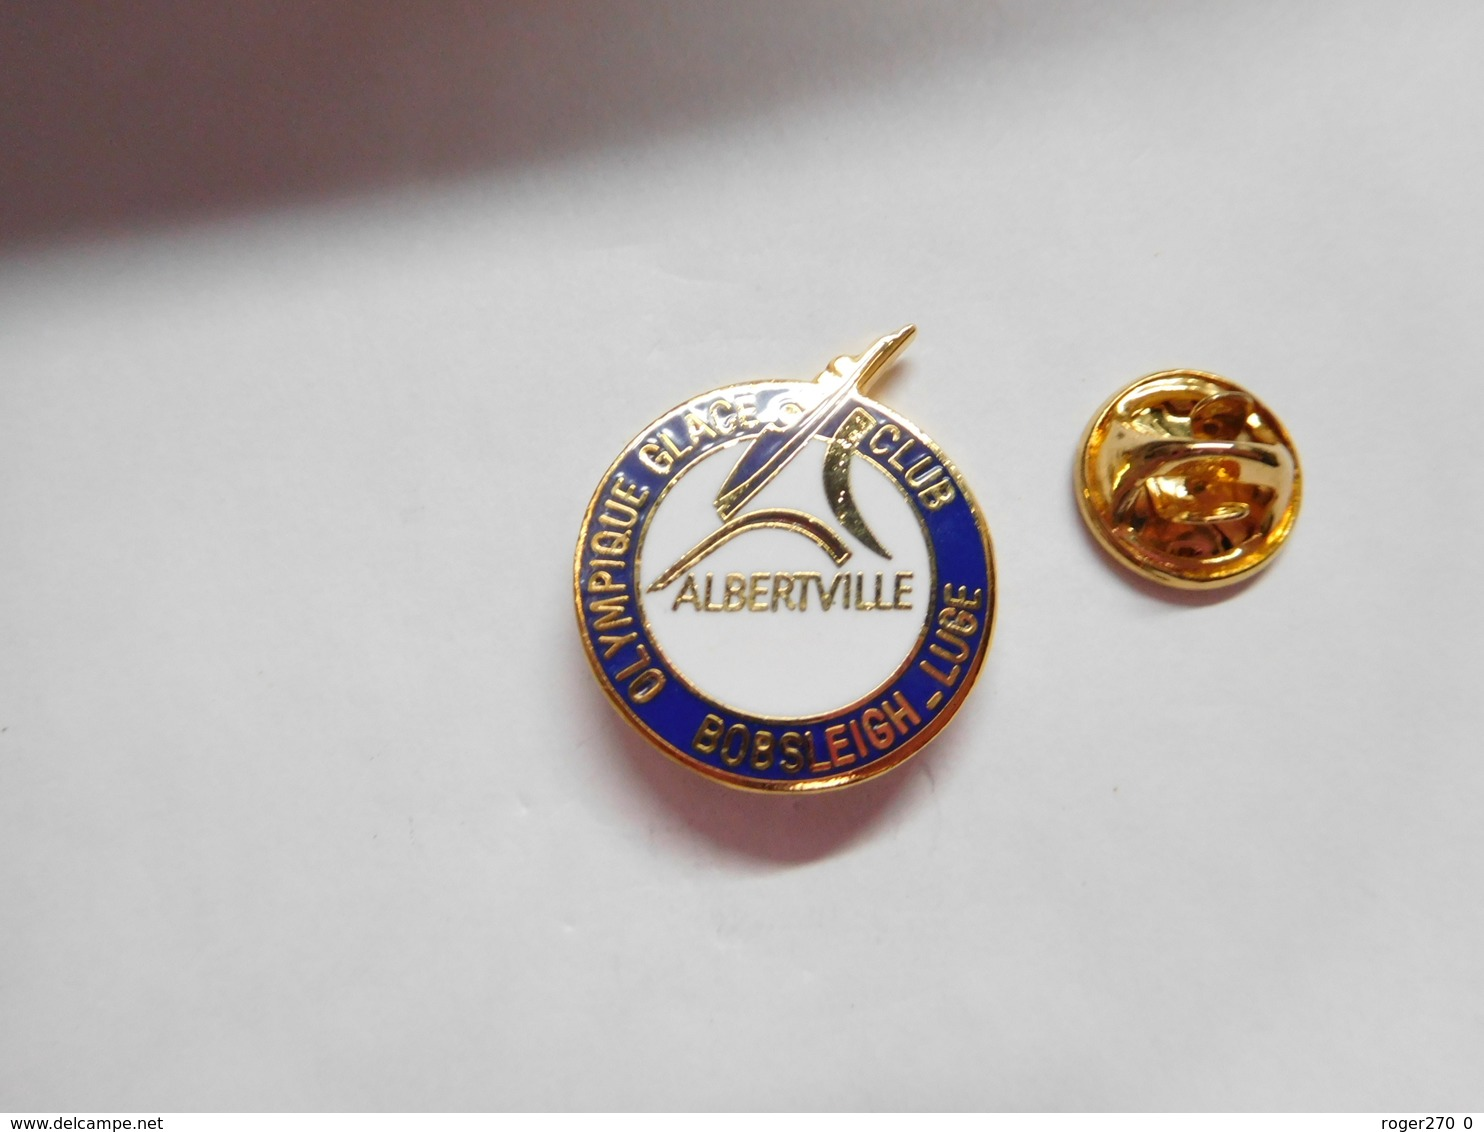 Superbe Pin's En EGF , Olympique Glace Club , Bobsleigh - Luge , Albertville - Pin